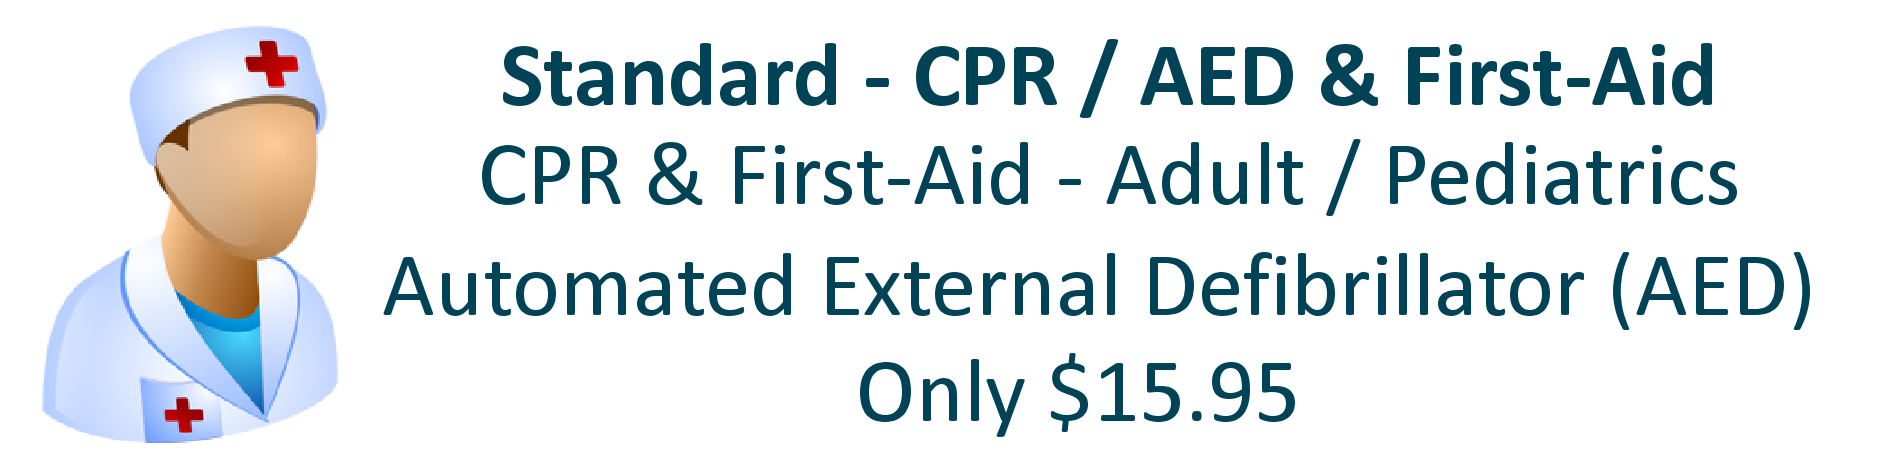 Online cpr aed first aid certification cpr certification cpr certification cpr recertification cpr online online cpr bls online basic xflitez Choice Image